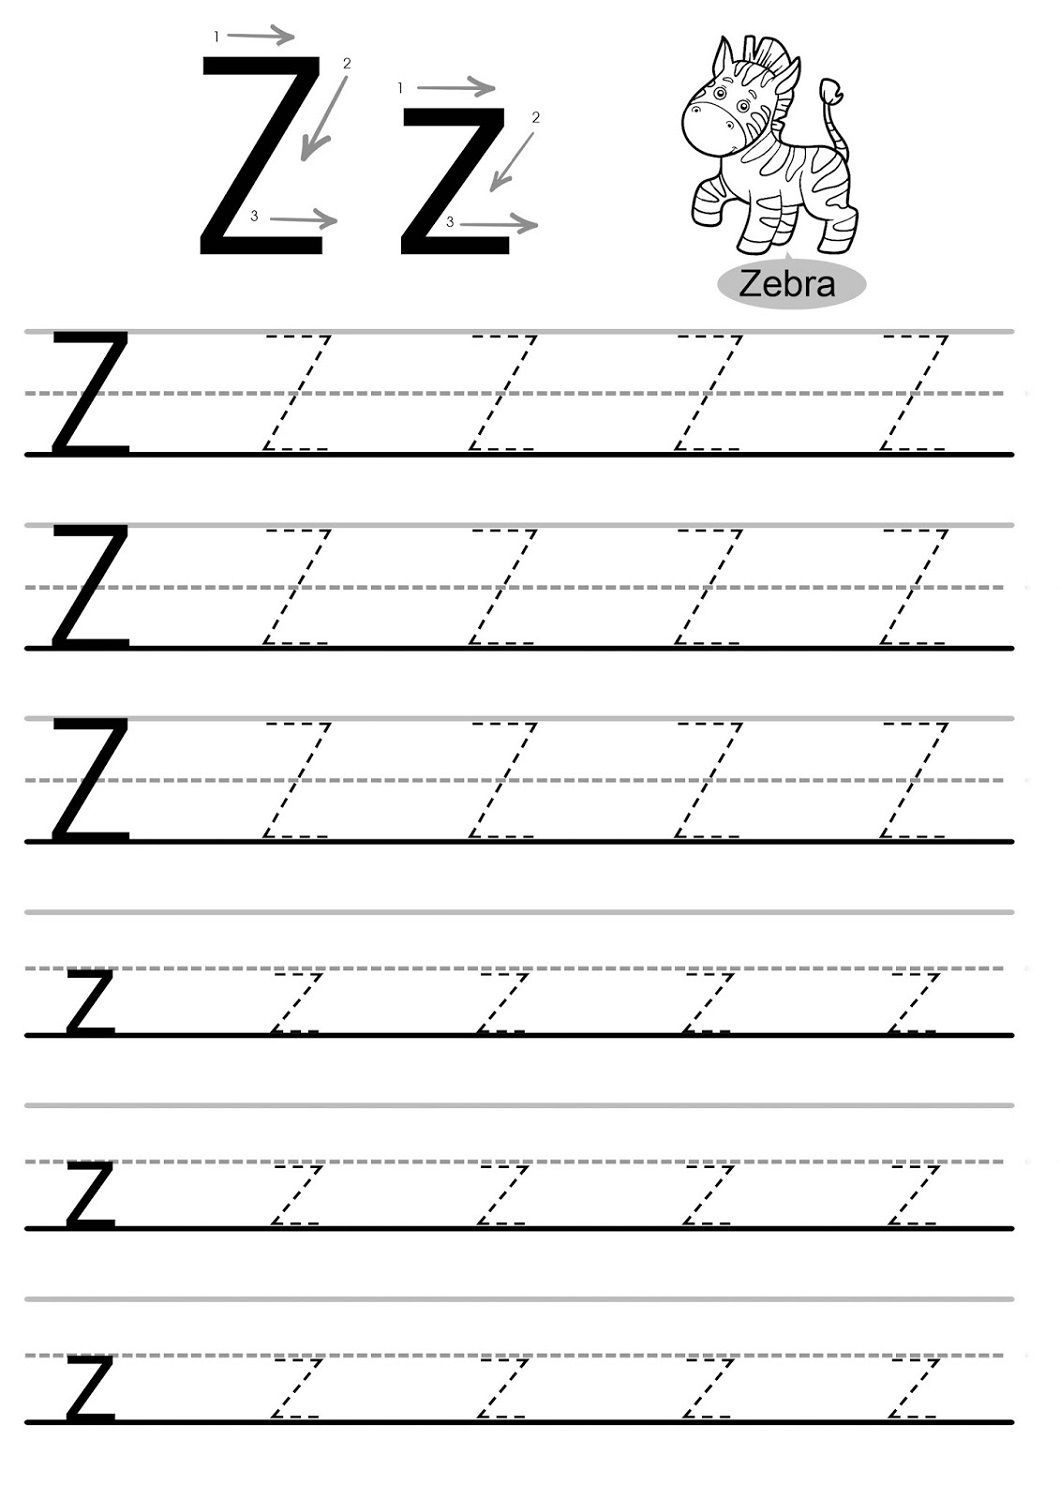 4 Traceable Name Worksheets Printable Letter Z Worksheets